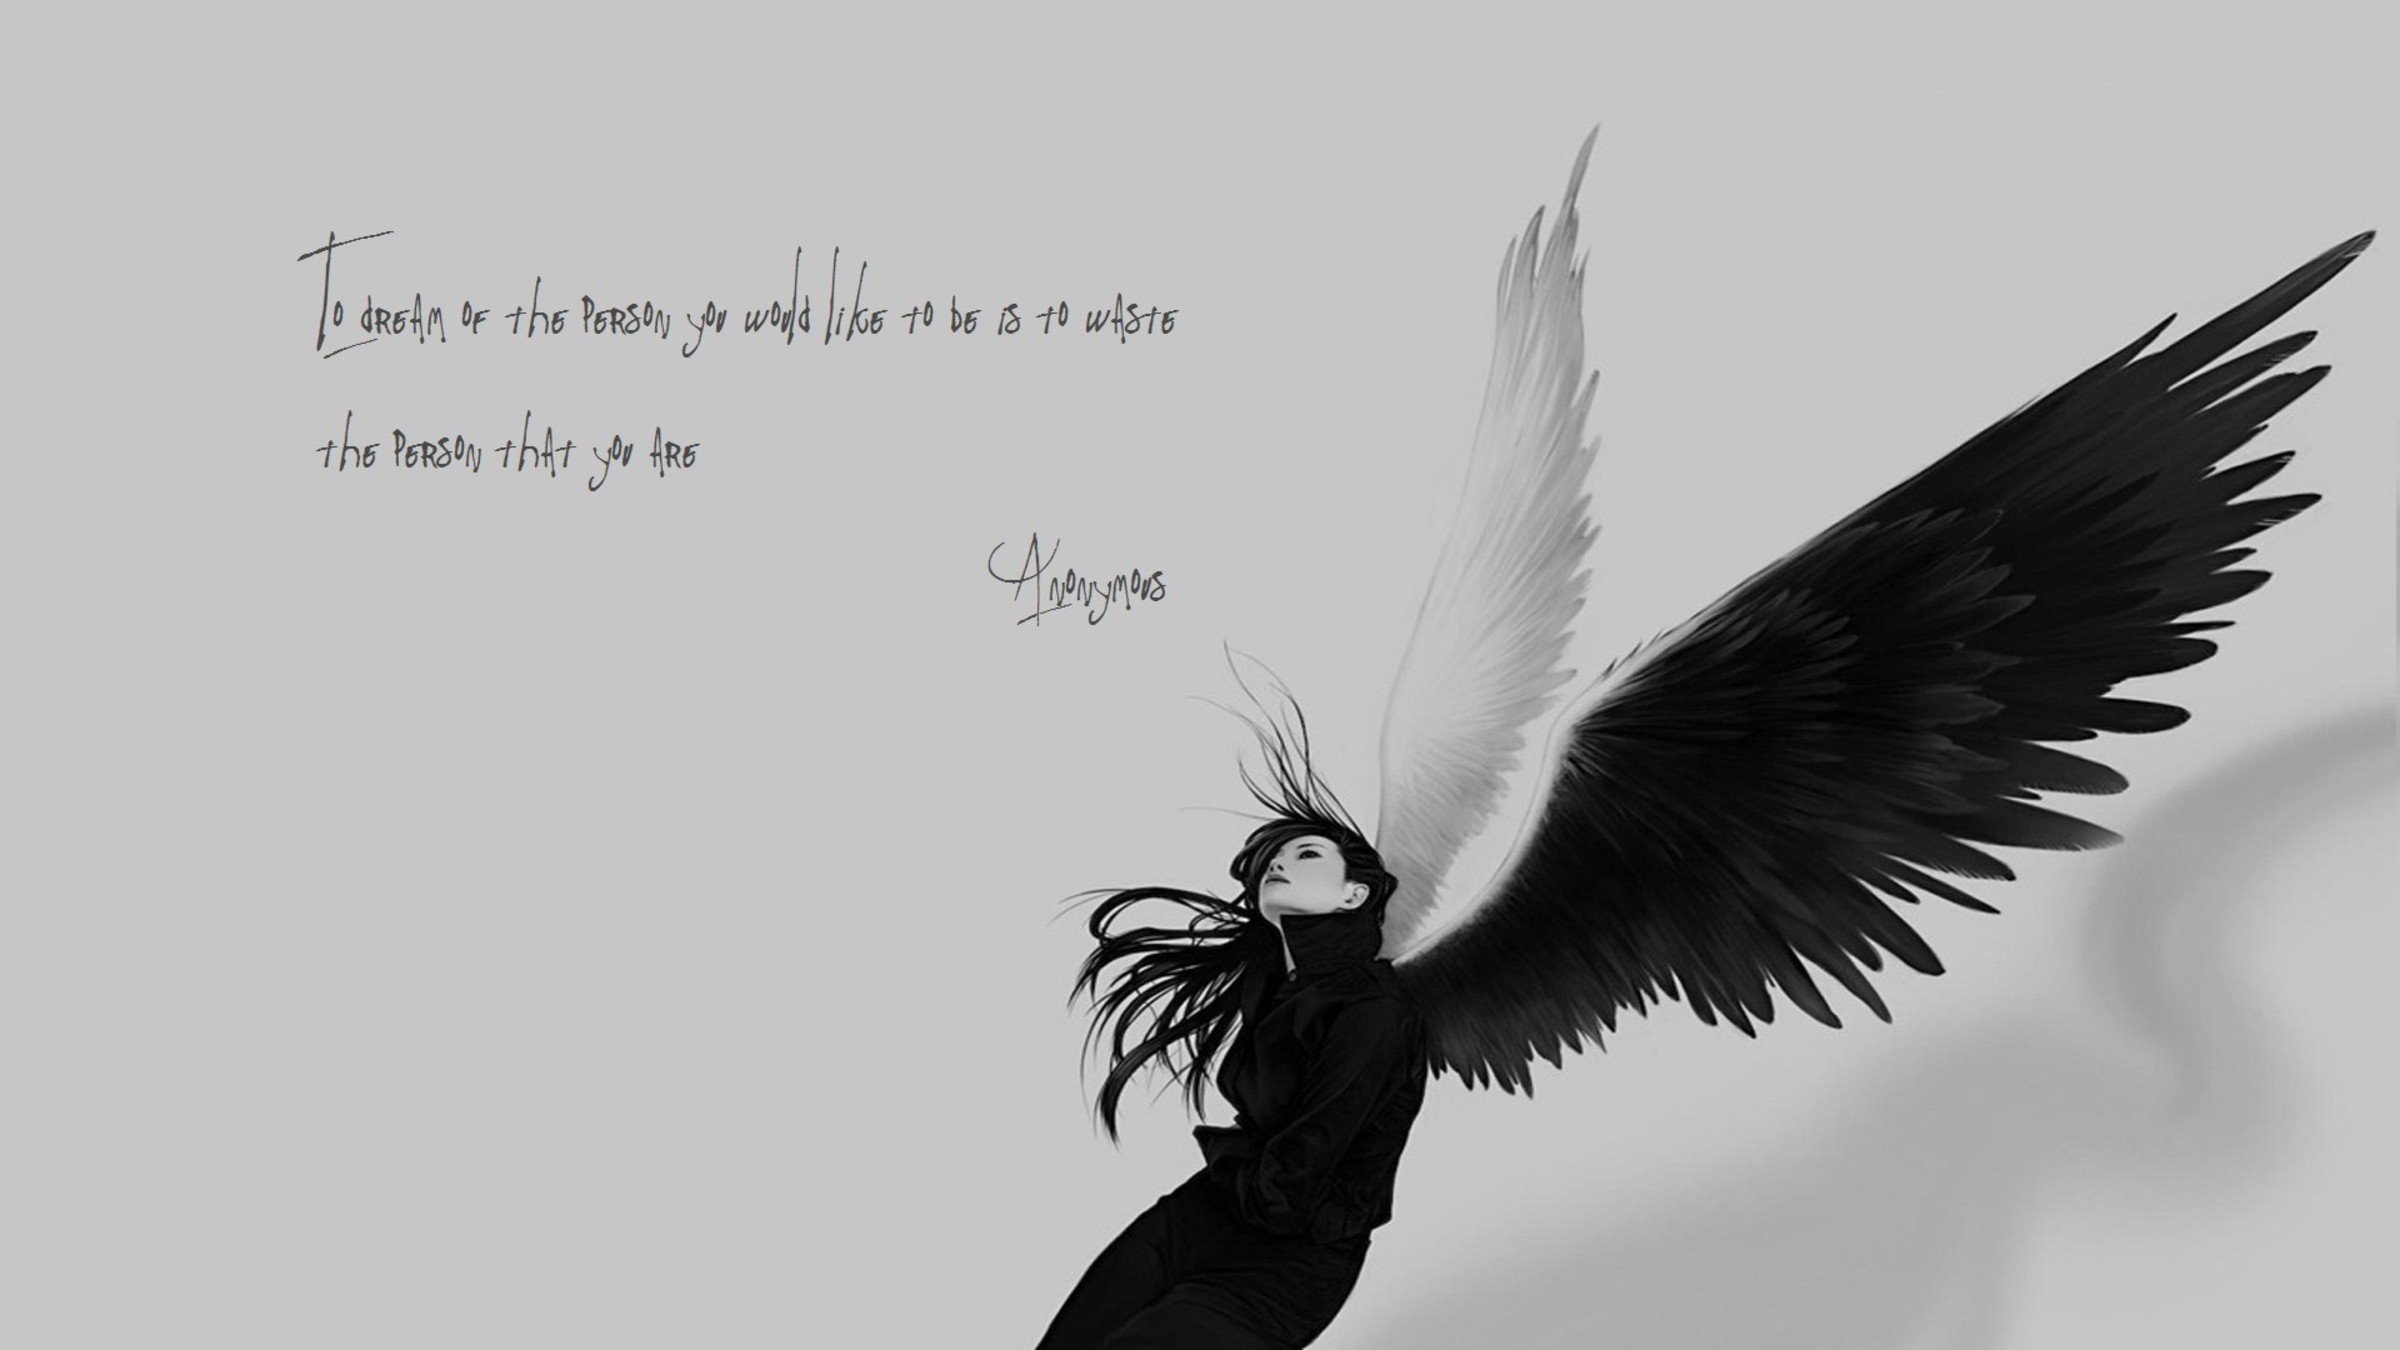 wallpaper.wiki-Anonymous-angels-monochrome-quotes-sad-2400×1350-